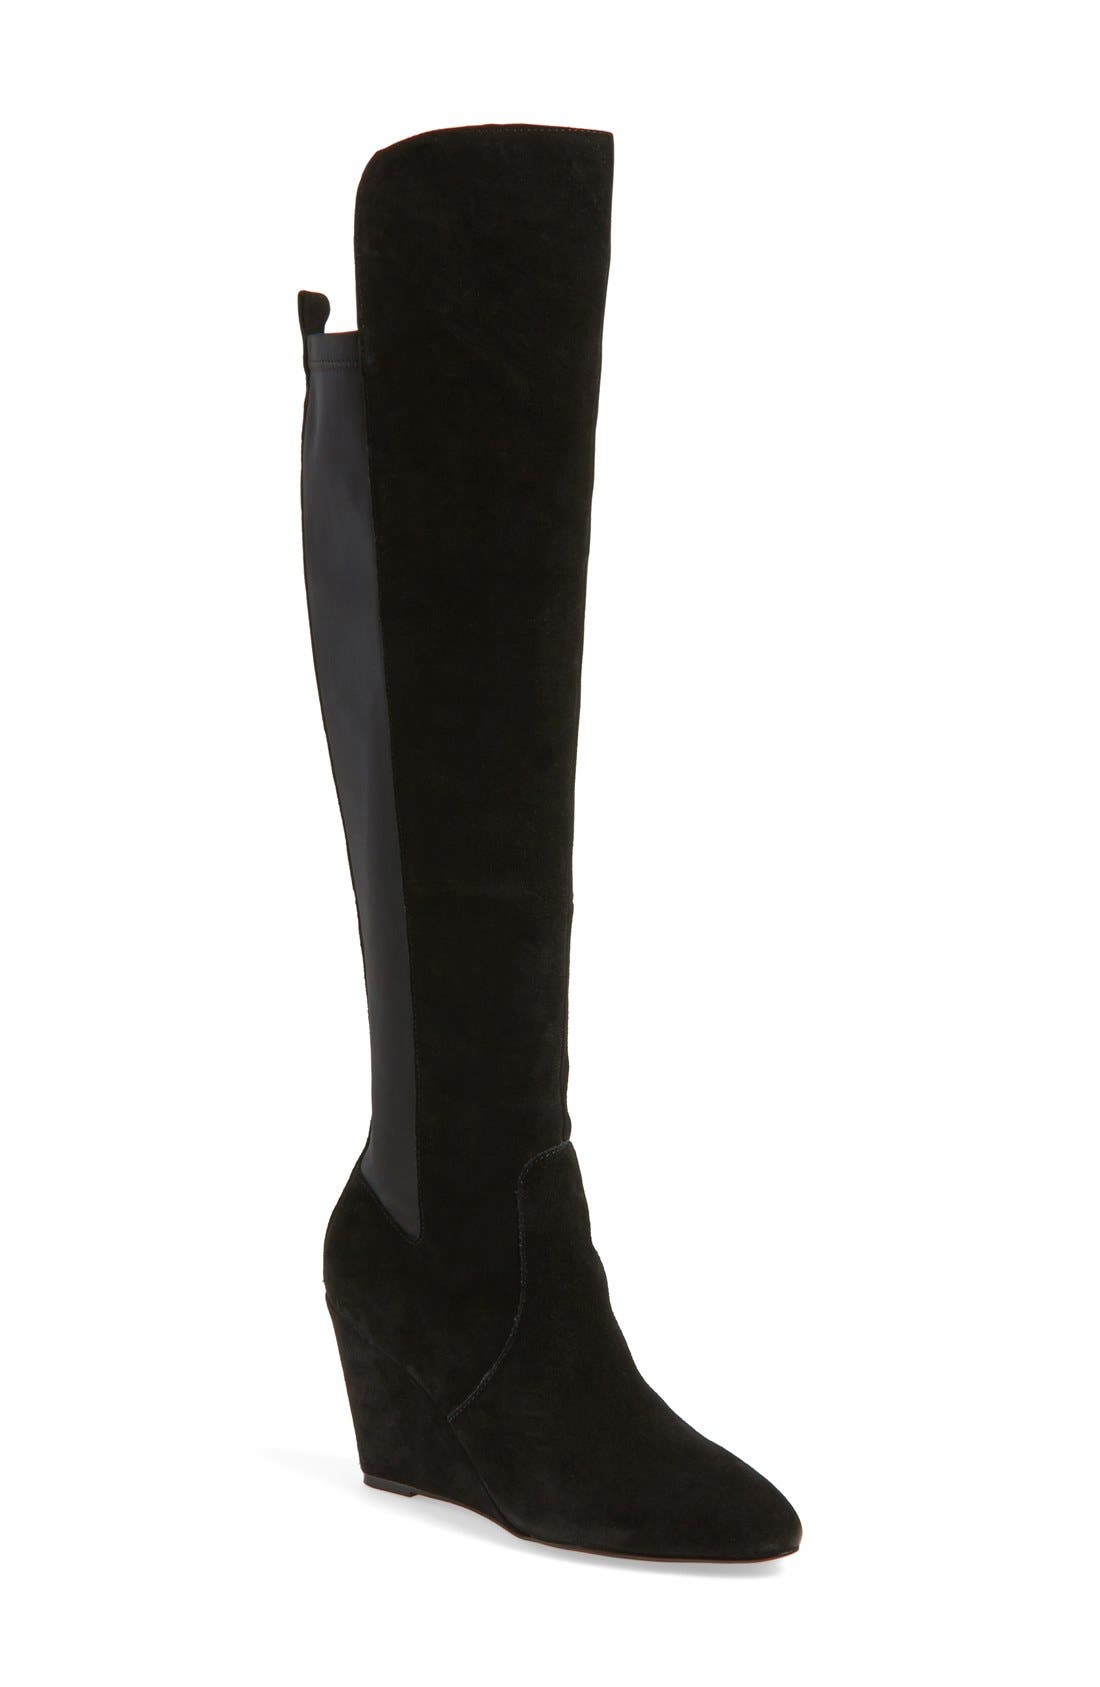 CHARLES BY CHARLES DAVID, 'Edie' Over the Knee Boot, Main thumbnail 1, color, 002